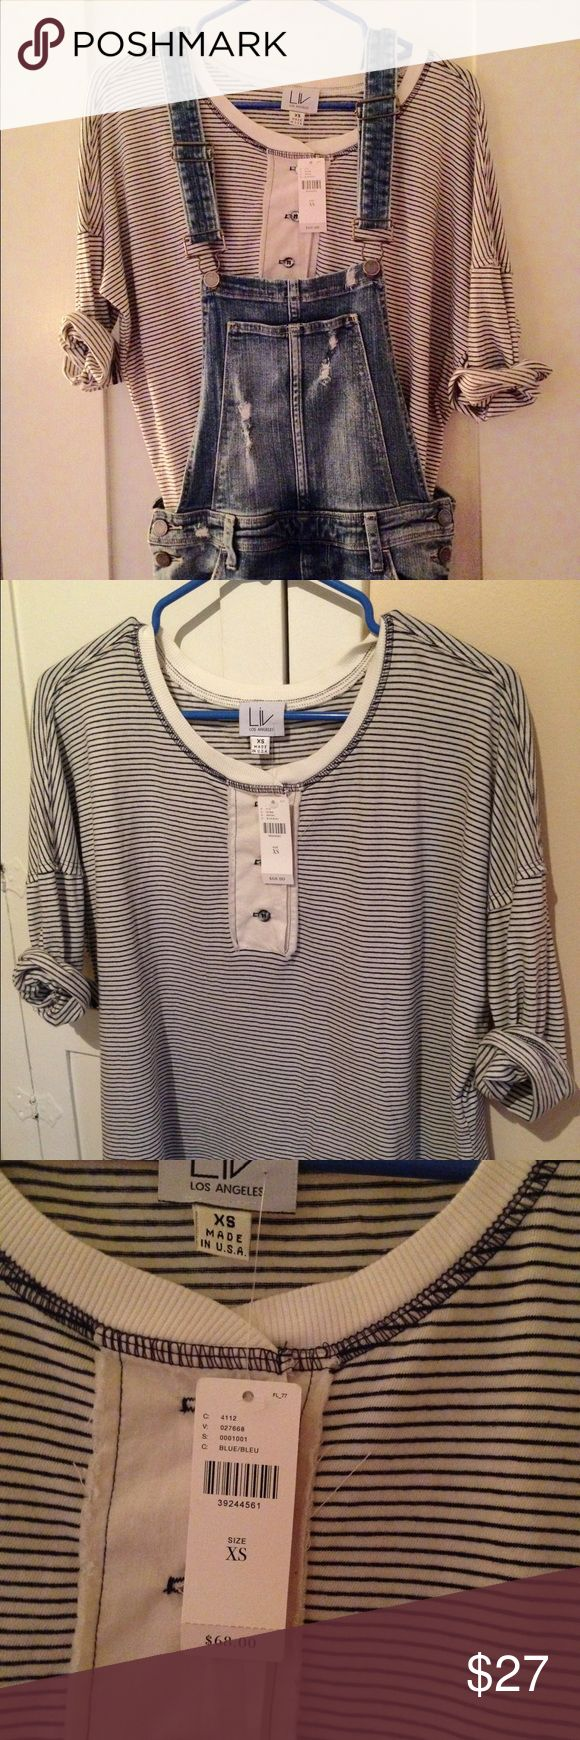 Anthropologie top This is NWT by Liv from Anthropologie size xs .. Very cute casual top . Stripes with buttons on front .. Pair with denim Anthropologie Tops Tees - Long Sleeve